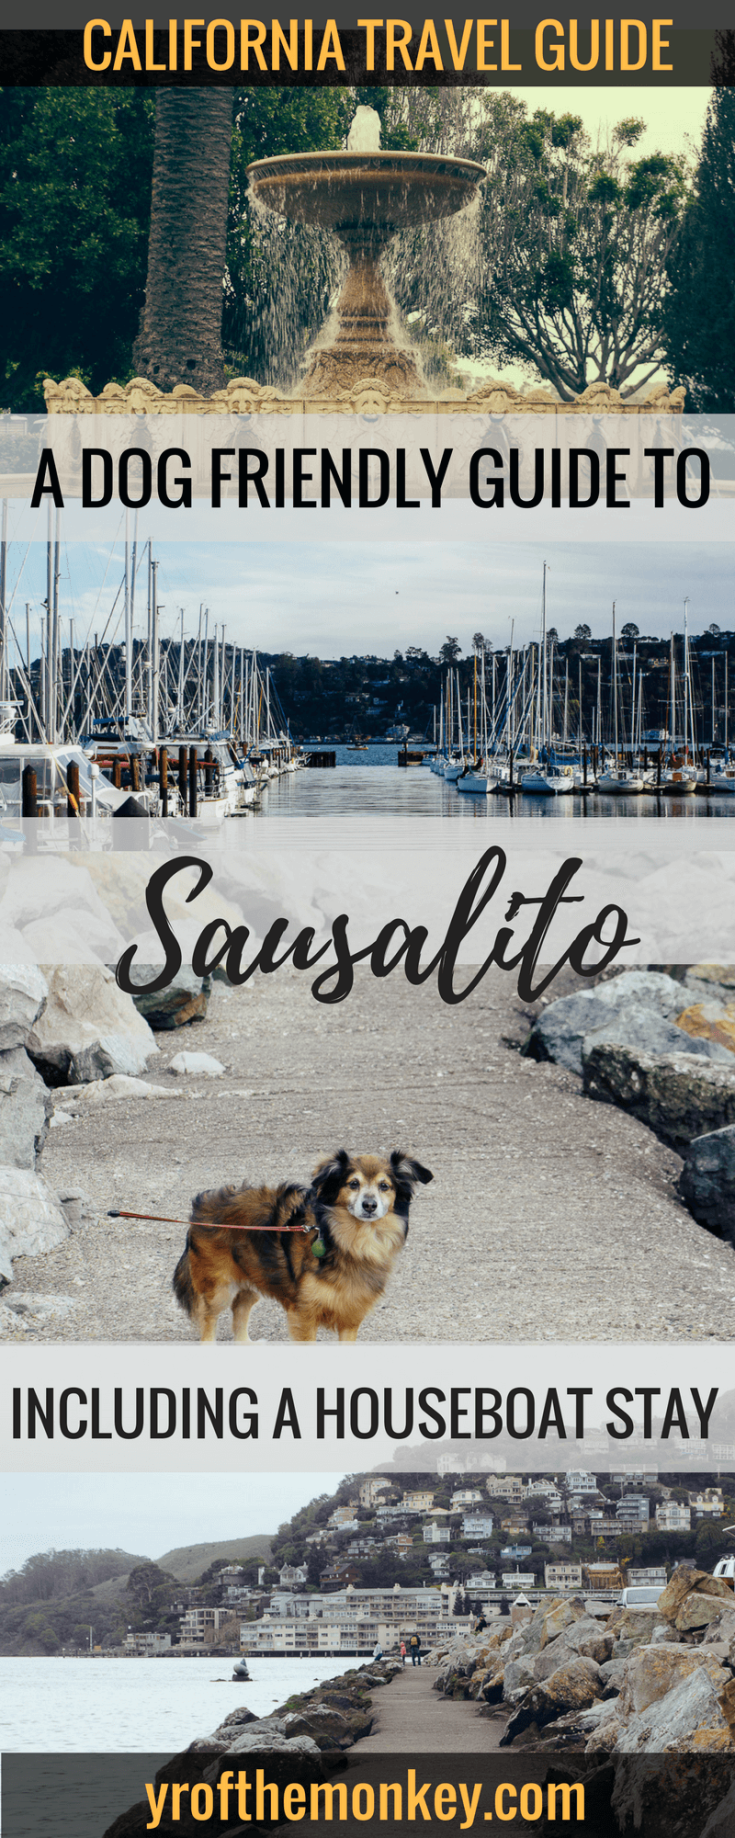 Dog Friendly Sausalito is your guide to Sausalito, California, USA which has many dog friendly things to do. Visit this Charming California town for a unique stay on a houseboat with your dog along with many other fun things to do! Pin this to your California or USA or pet travel board now! #dogfriendlytravel #travelwithpets #sausalito #californiavacation #USA